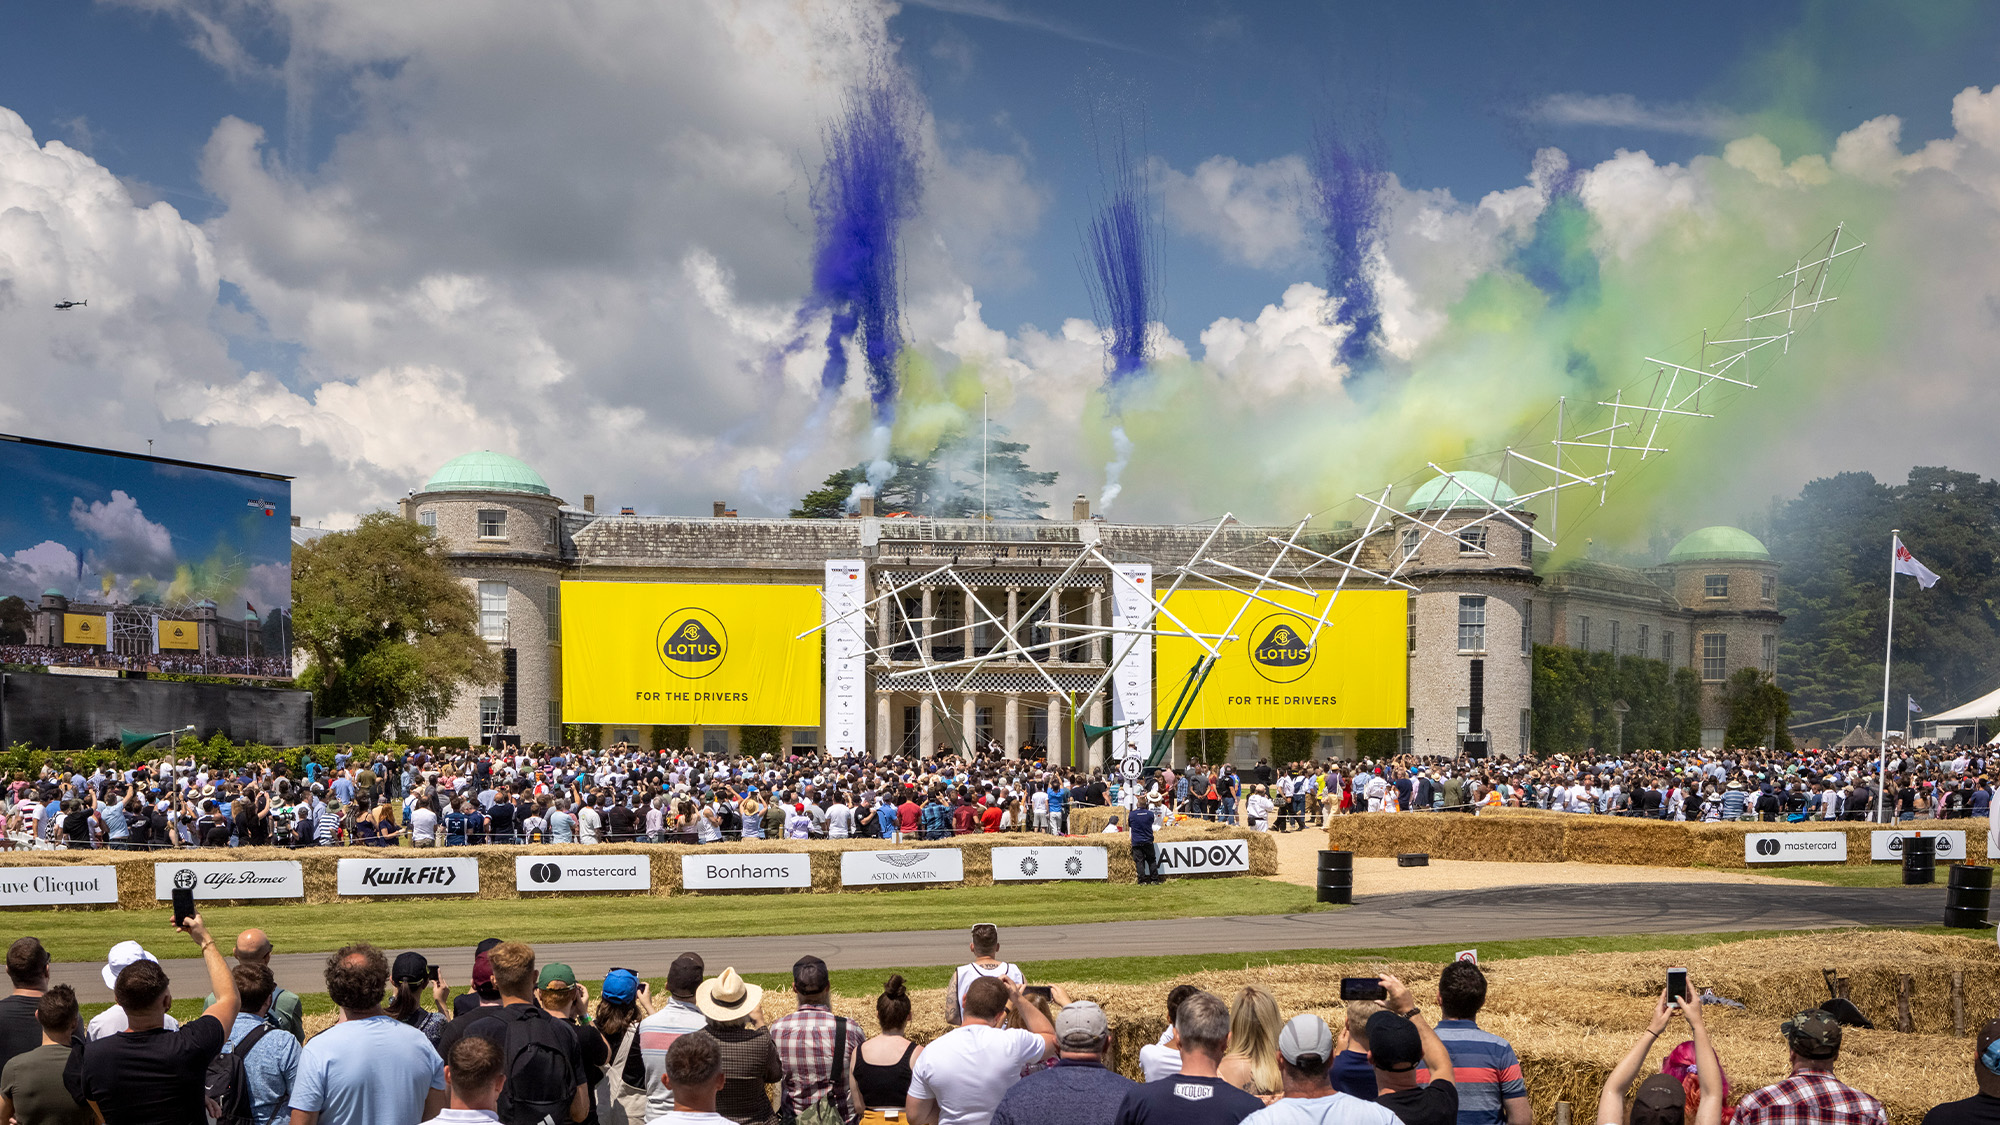 Fireworks at 2021 Goodwood Festival of Speed